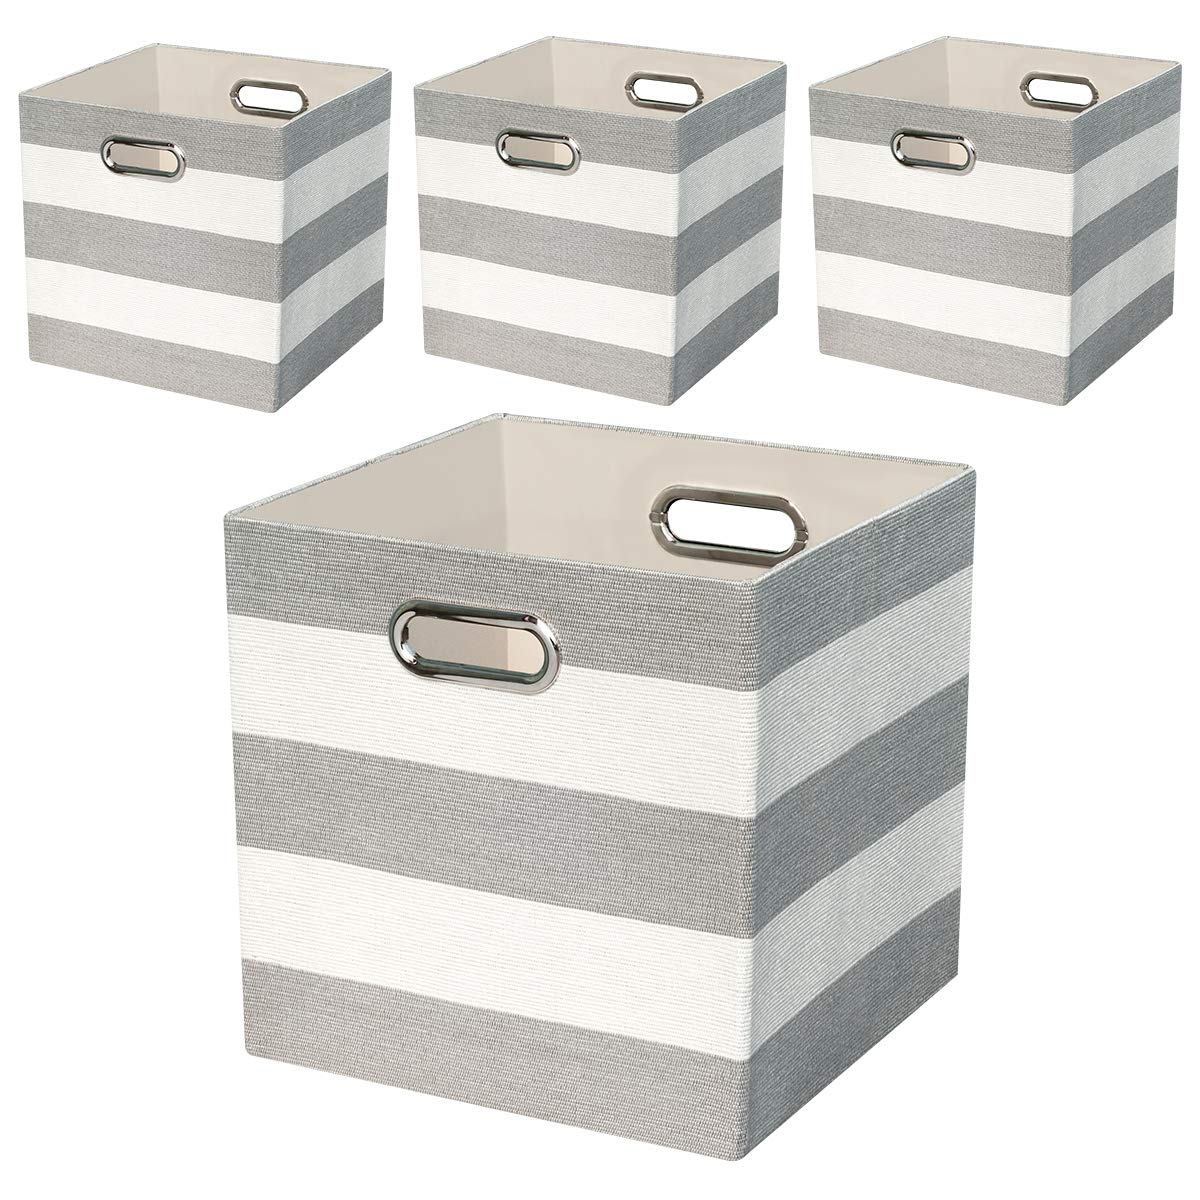 Storage Bins Storage Cubes,11×11 Collapsible Storage Boxes Containers Organizer Baskets for Nursery,Office,Closet,Shelf - 4pcs,Grey-white Striped by Posprica